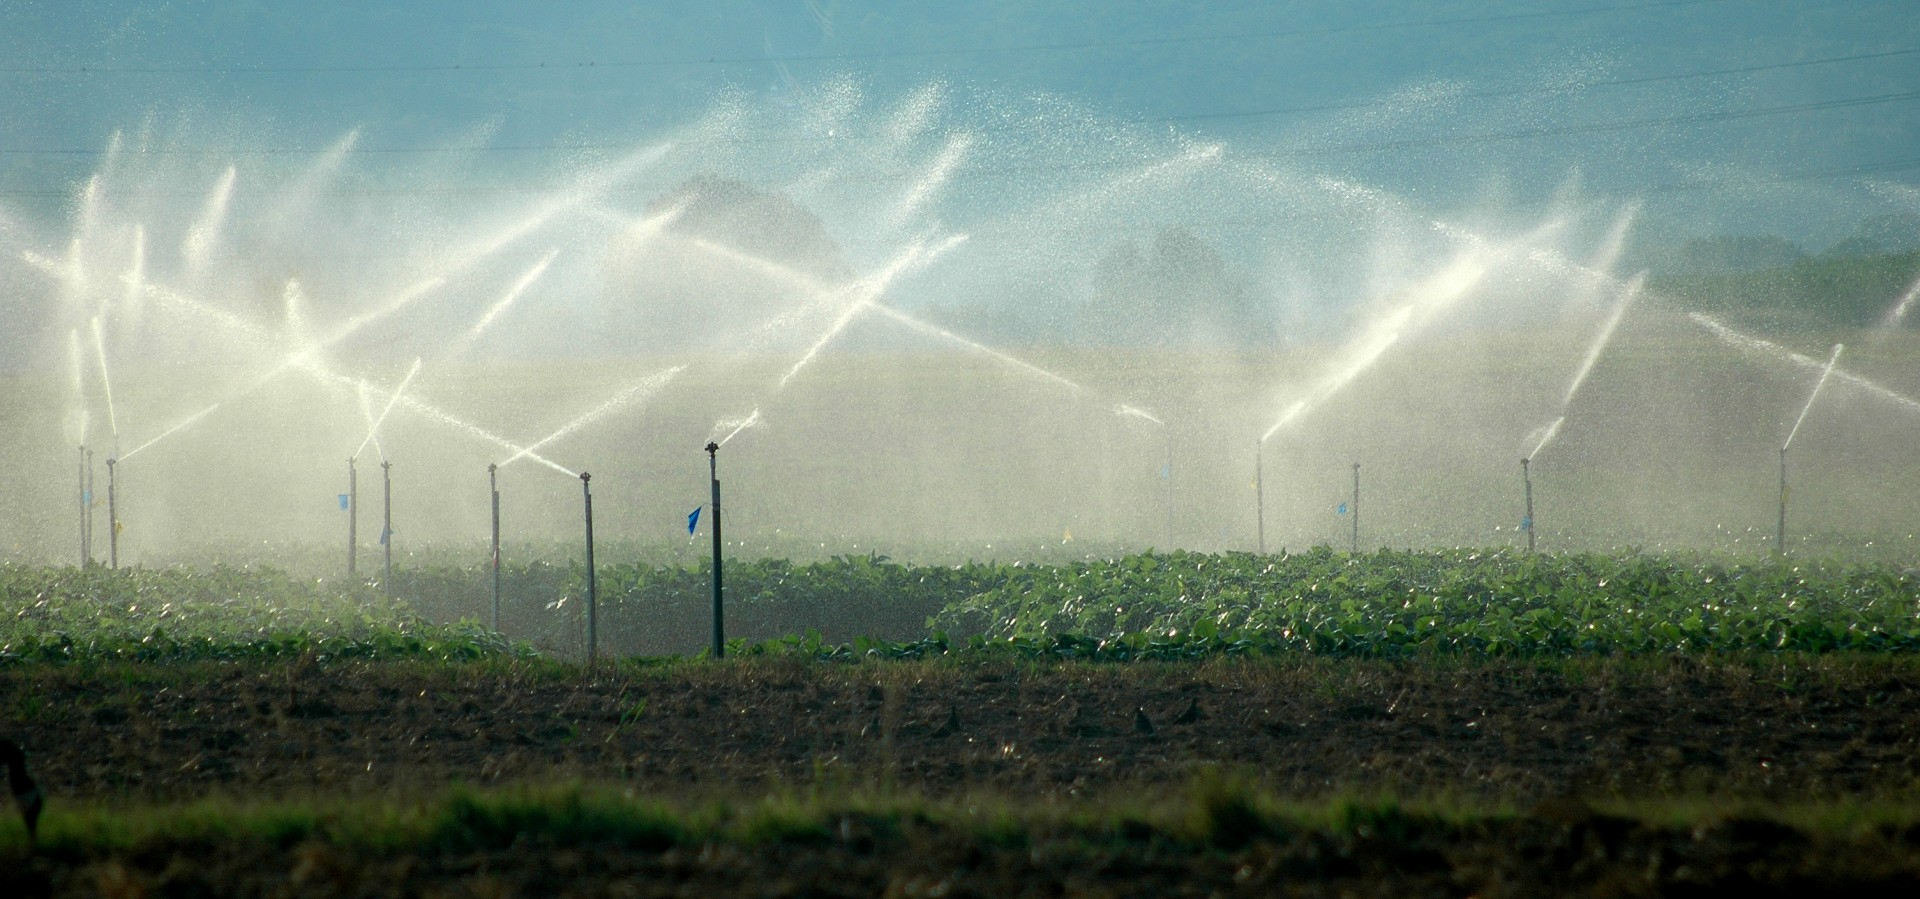 Report Details People's Attitudes about Water Issues and Policies